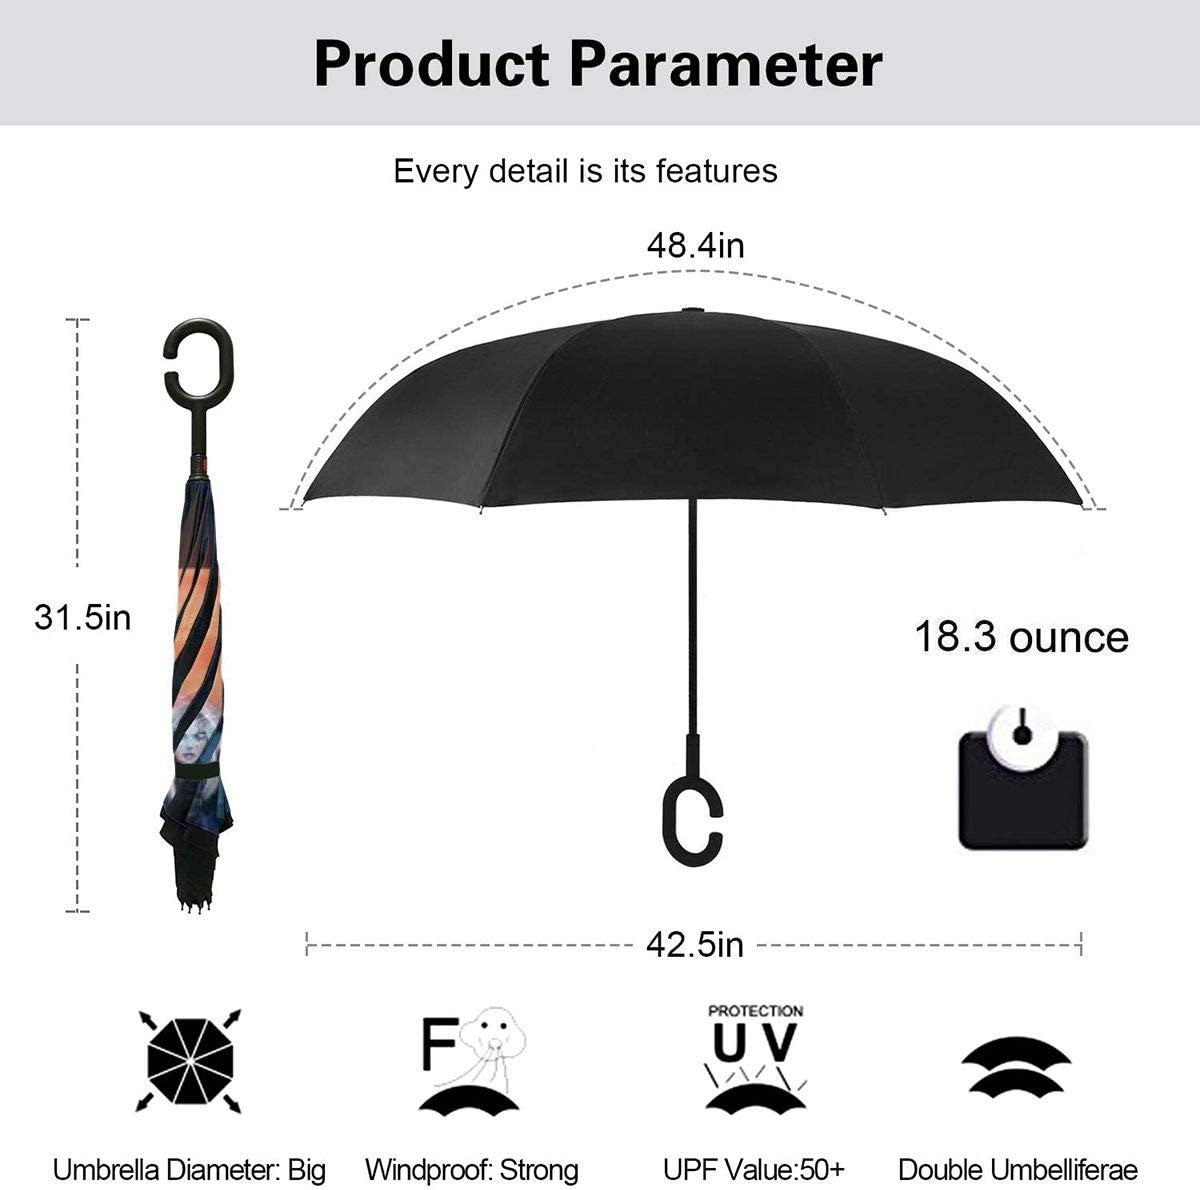 With C-Shaped Handle UV Protection Inverted Folding Umbrellas Windproof And Rainproof Double Folding Inverted Umbrella World Of Warcraft Fantasy Warrior Moon Weapon Elf Darkness Car Reverse Umbrella